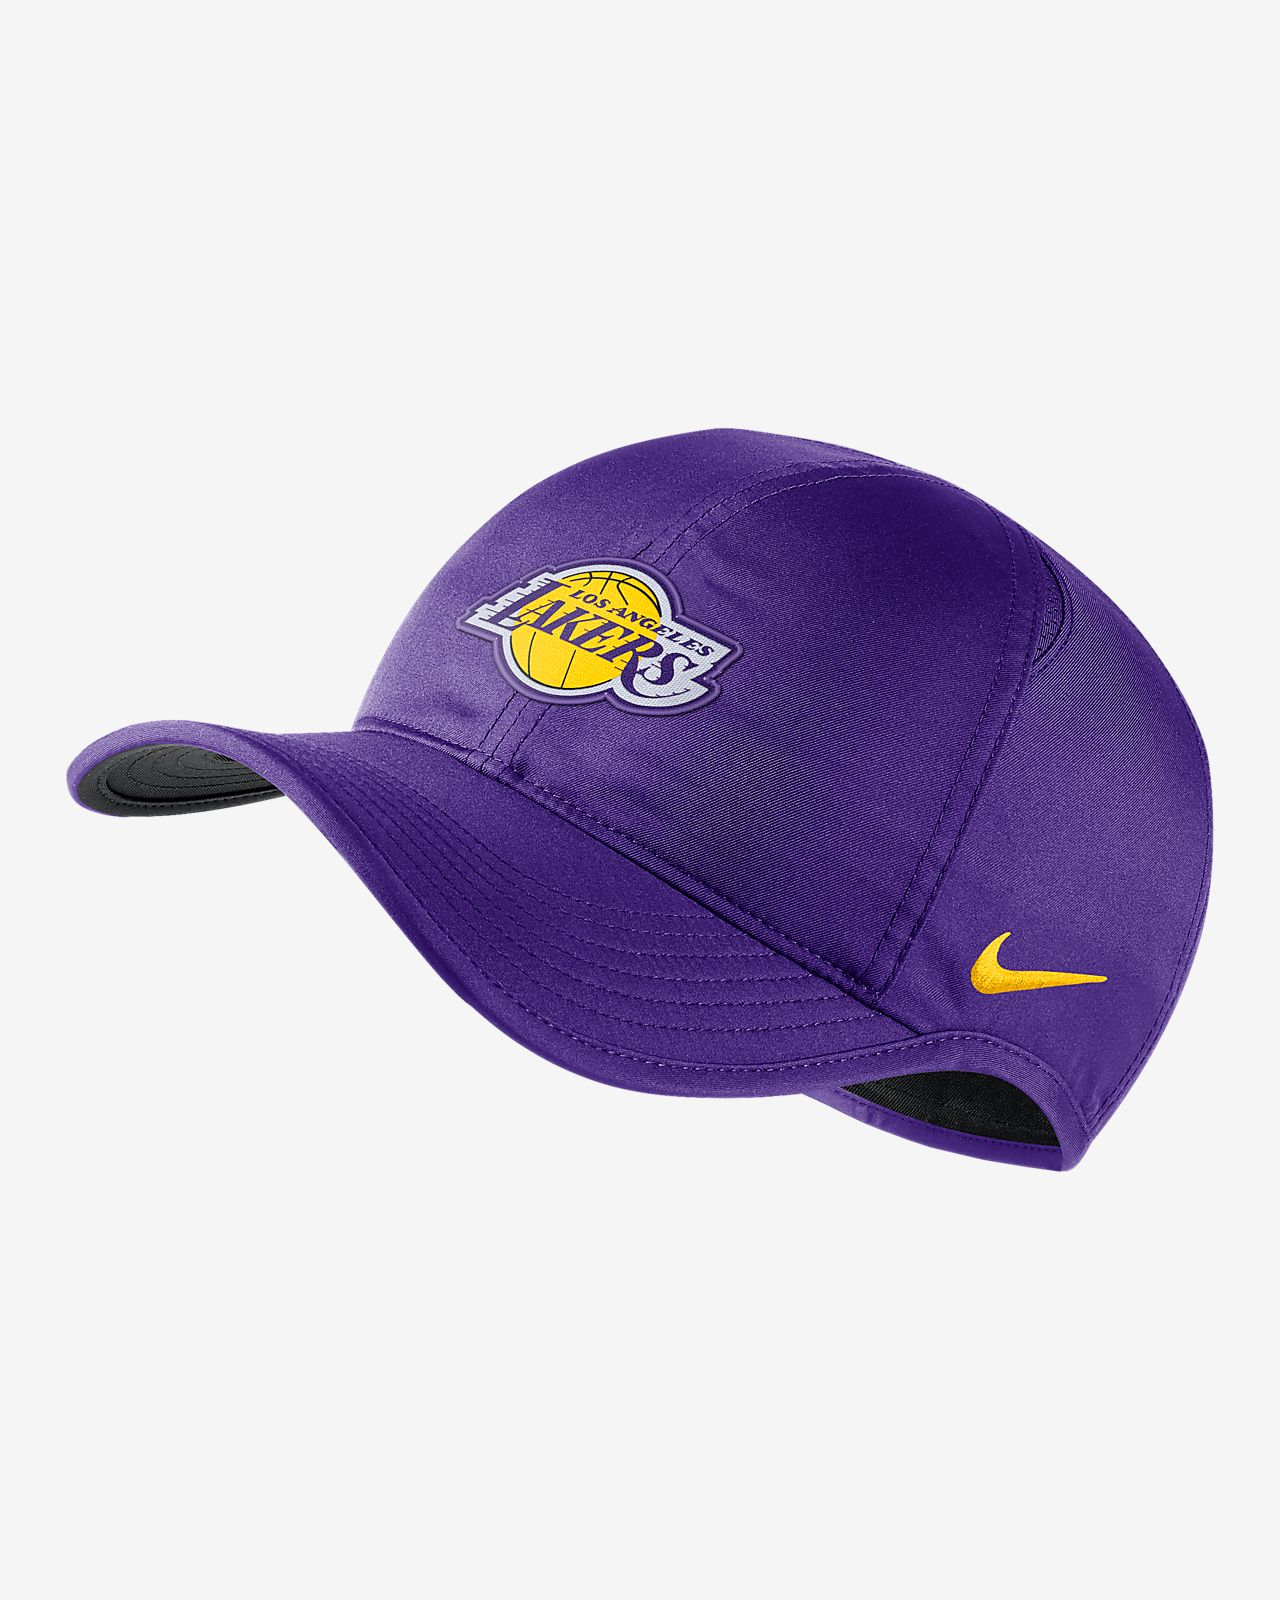 Los Angeles Lakers Nike AeroBill Featherlight NBA Hat